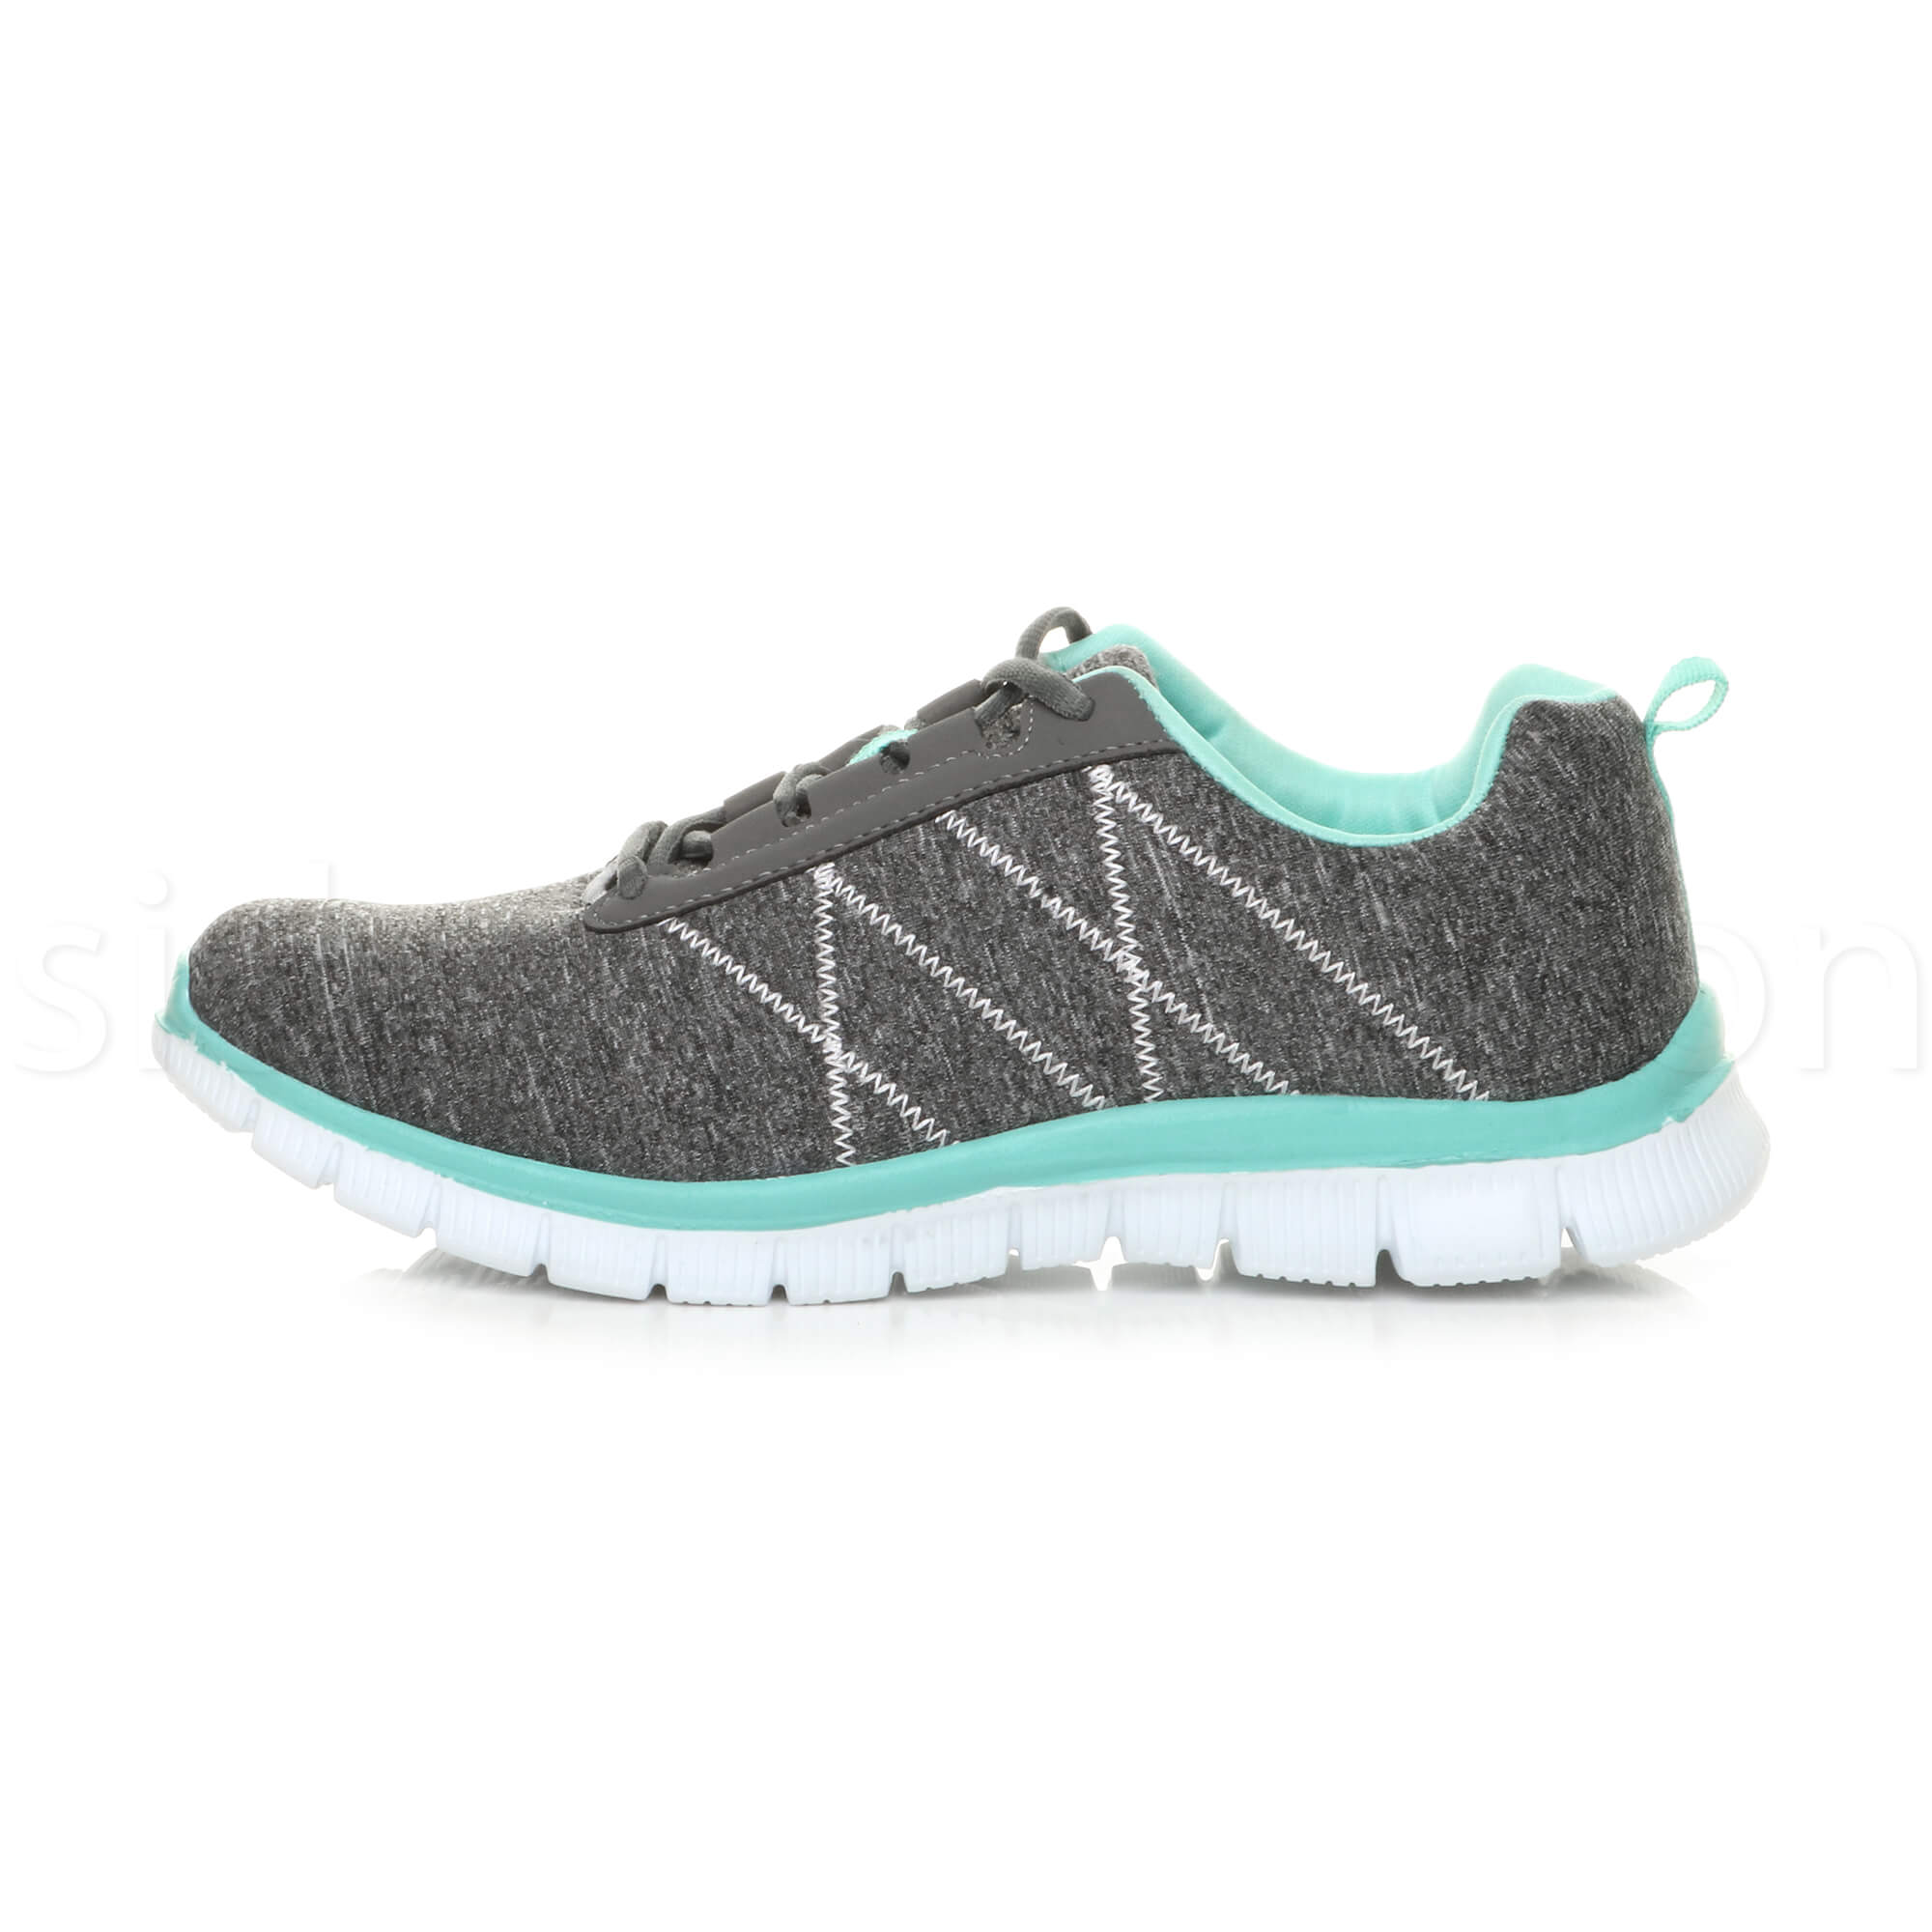 Womens-ladies-comfort-memory-foam-lace-up-trainers-activewear-sneakers-gym-shoes thumbnail 45